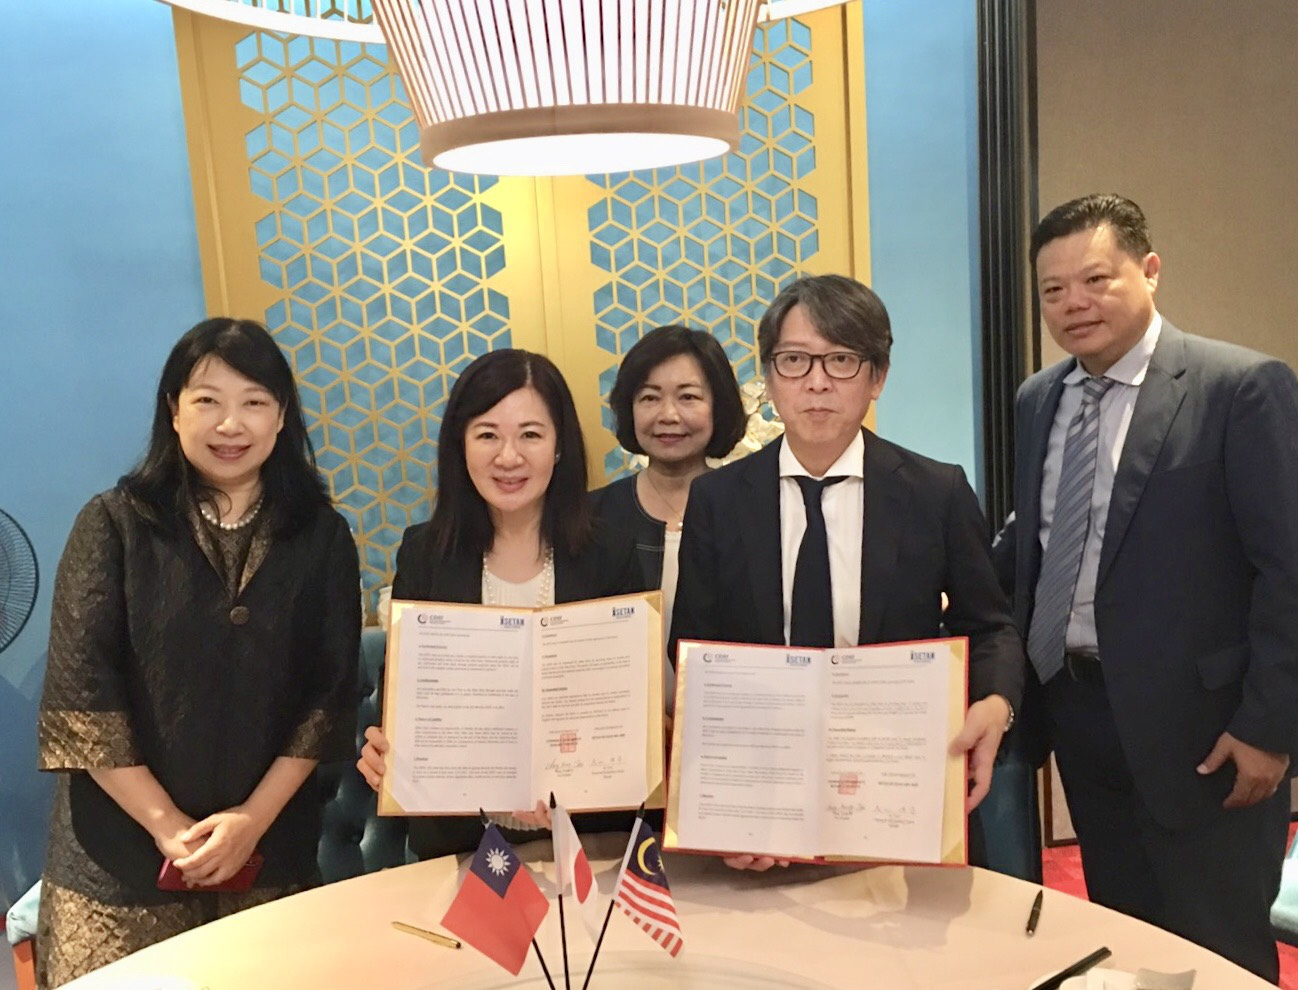 COA divisional chief Tang Shu-hua and Taiwan's representative in Malaysia Anne Hung were present at the signing of the MOU between the CDRI and Isetan of Japan.